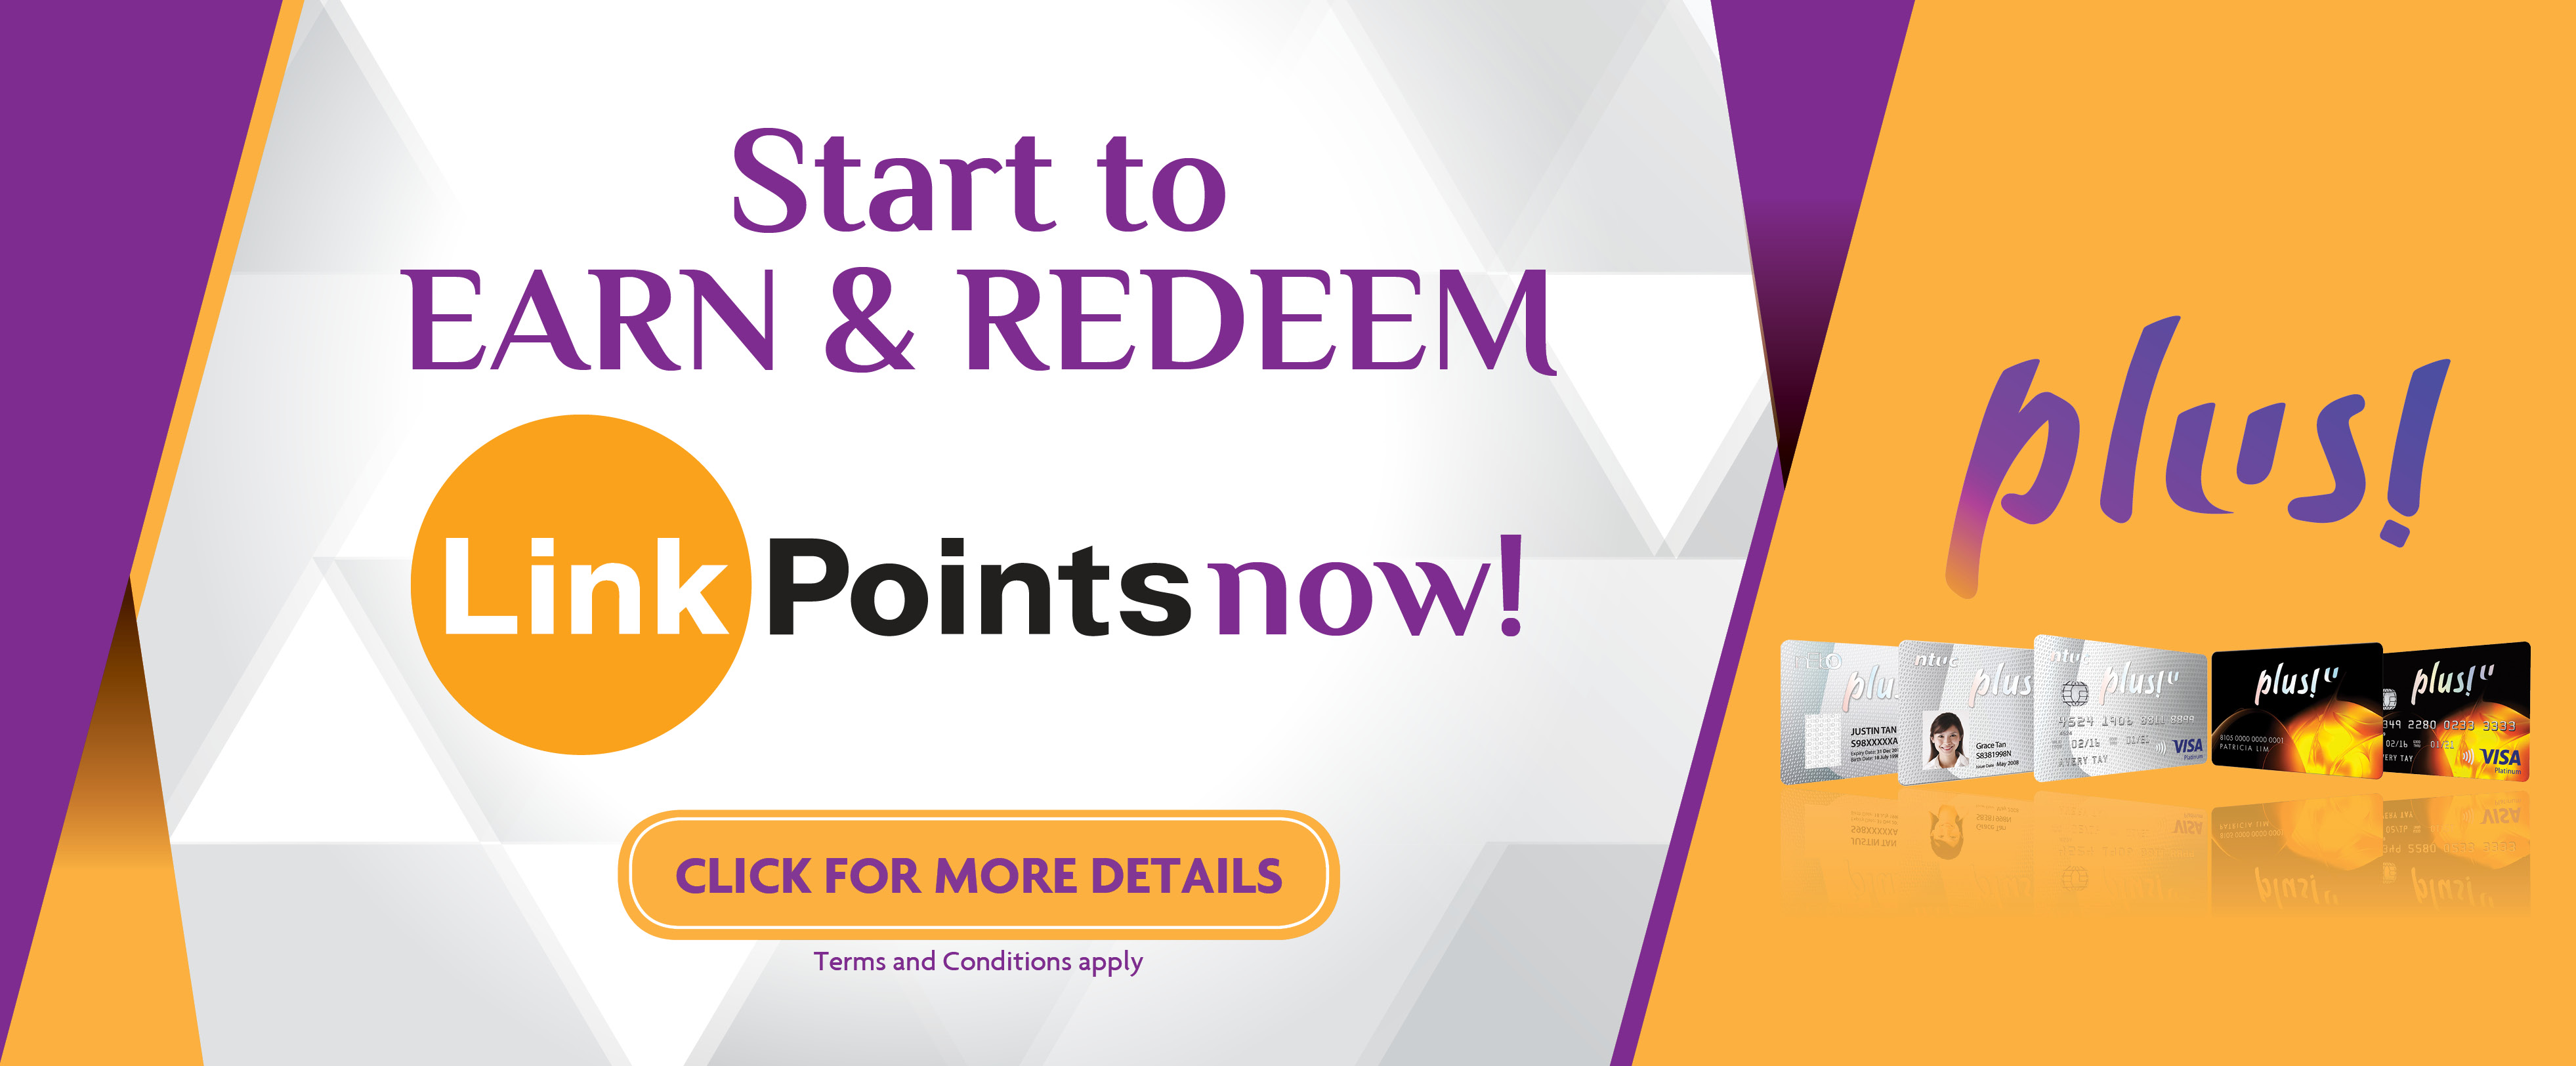 Select-SF1809012 NTUC LinkPoint Web Banner 942x390px v2 (1)